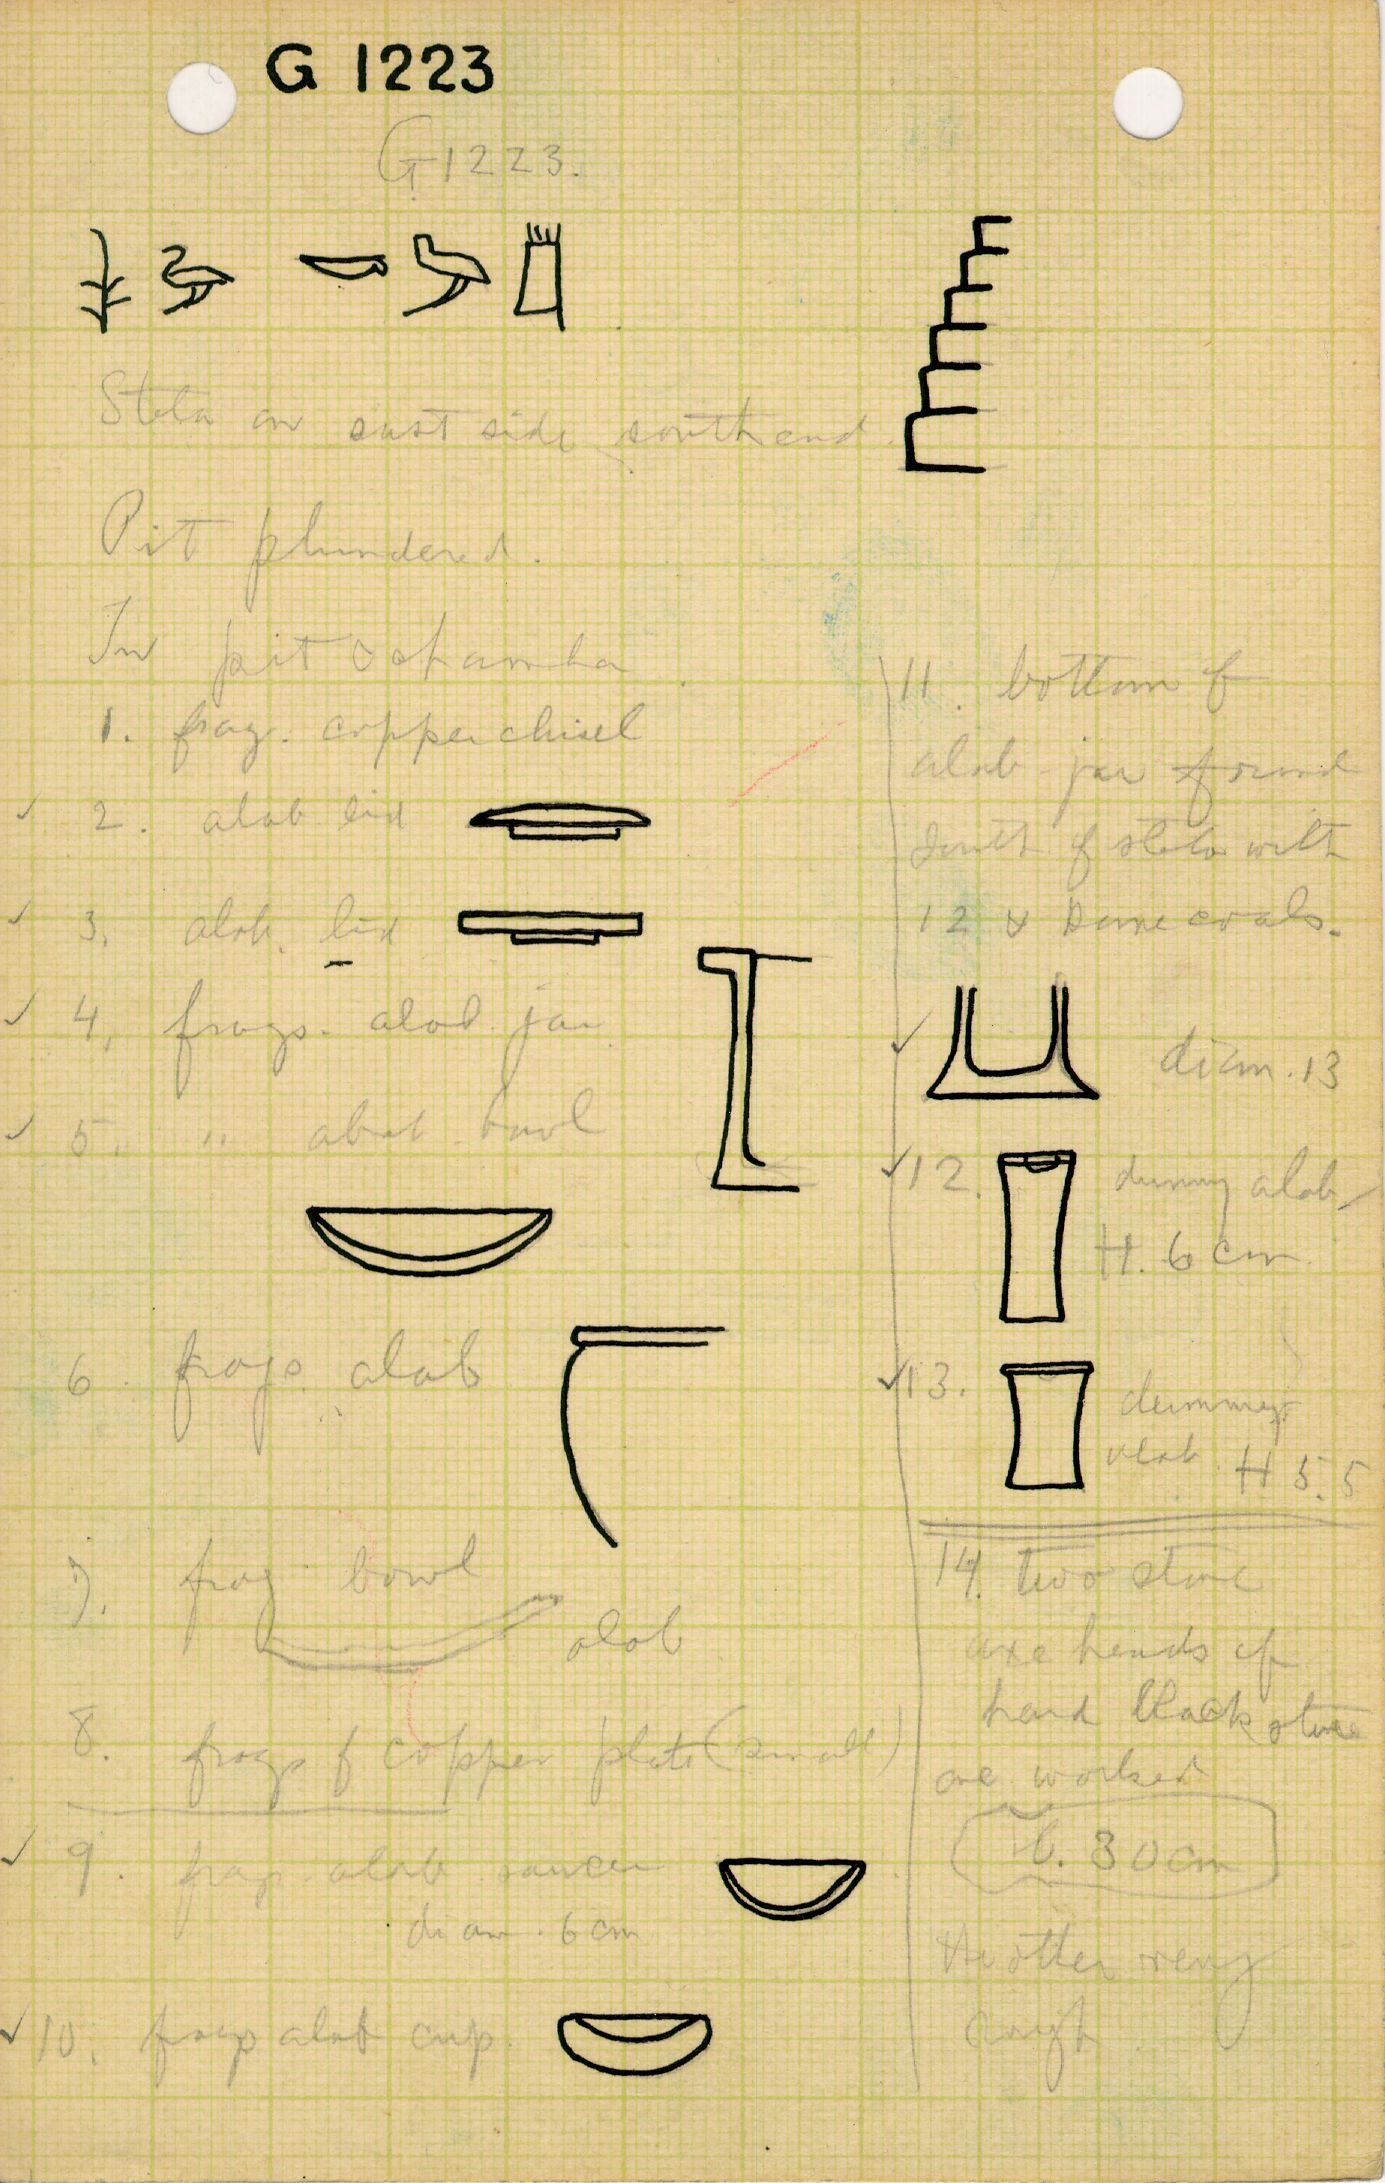 Notes: G 1223, Objects